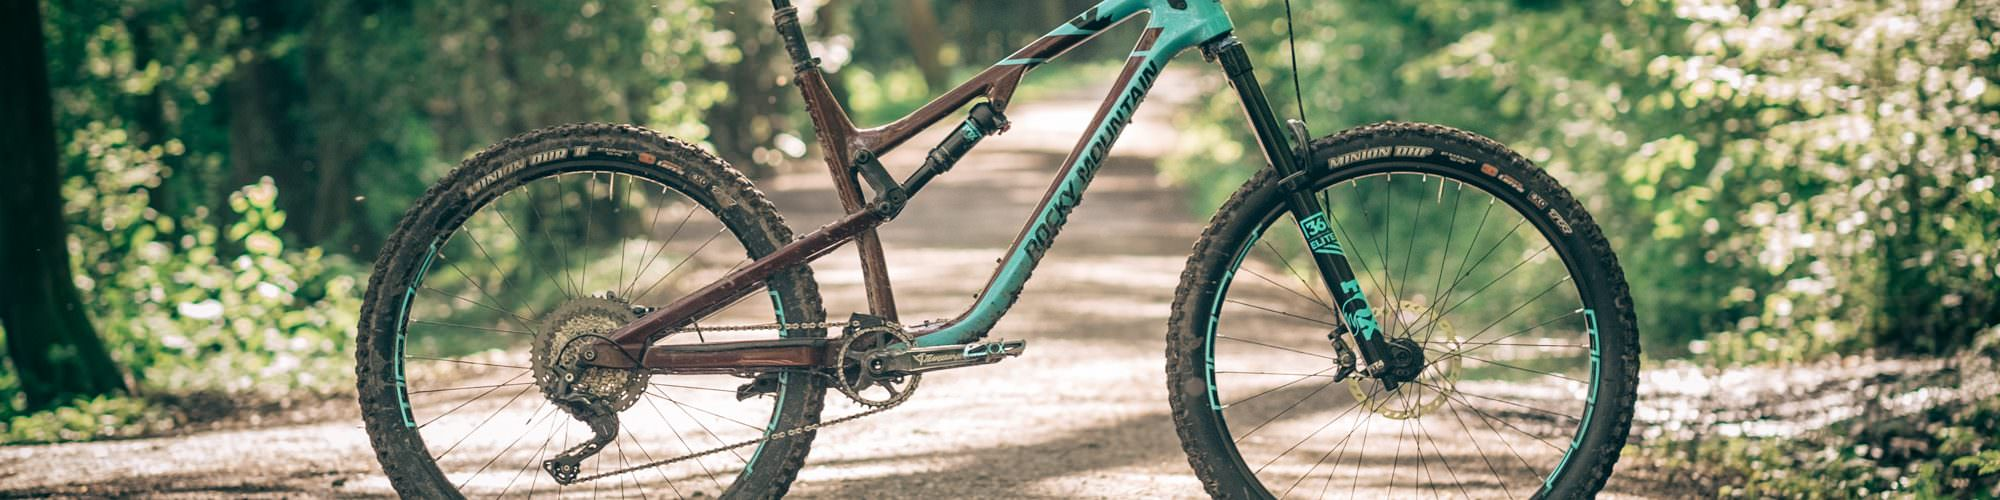 Rocky Mountain Altitude 2018 Test – Evolution Completed | ENDURO ...